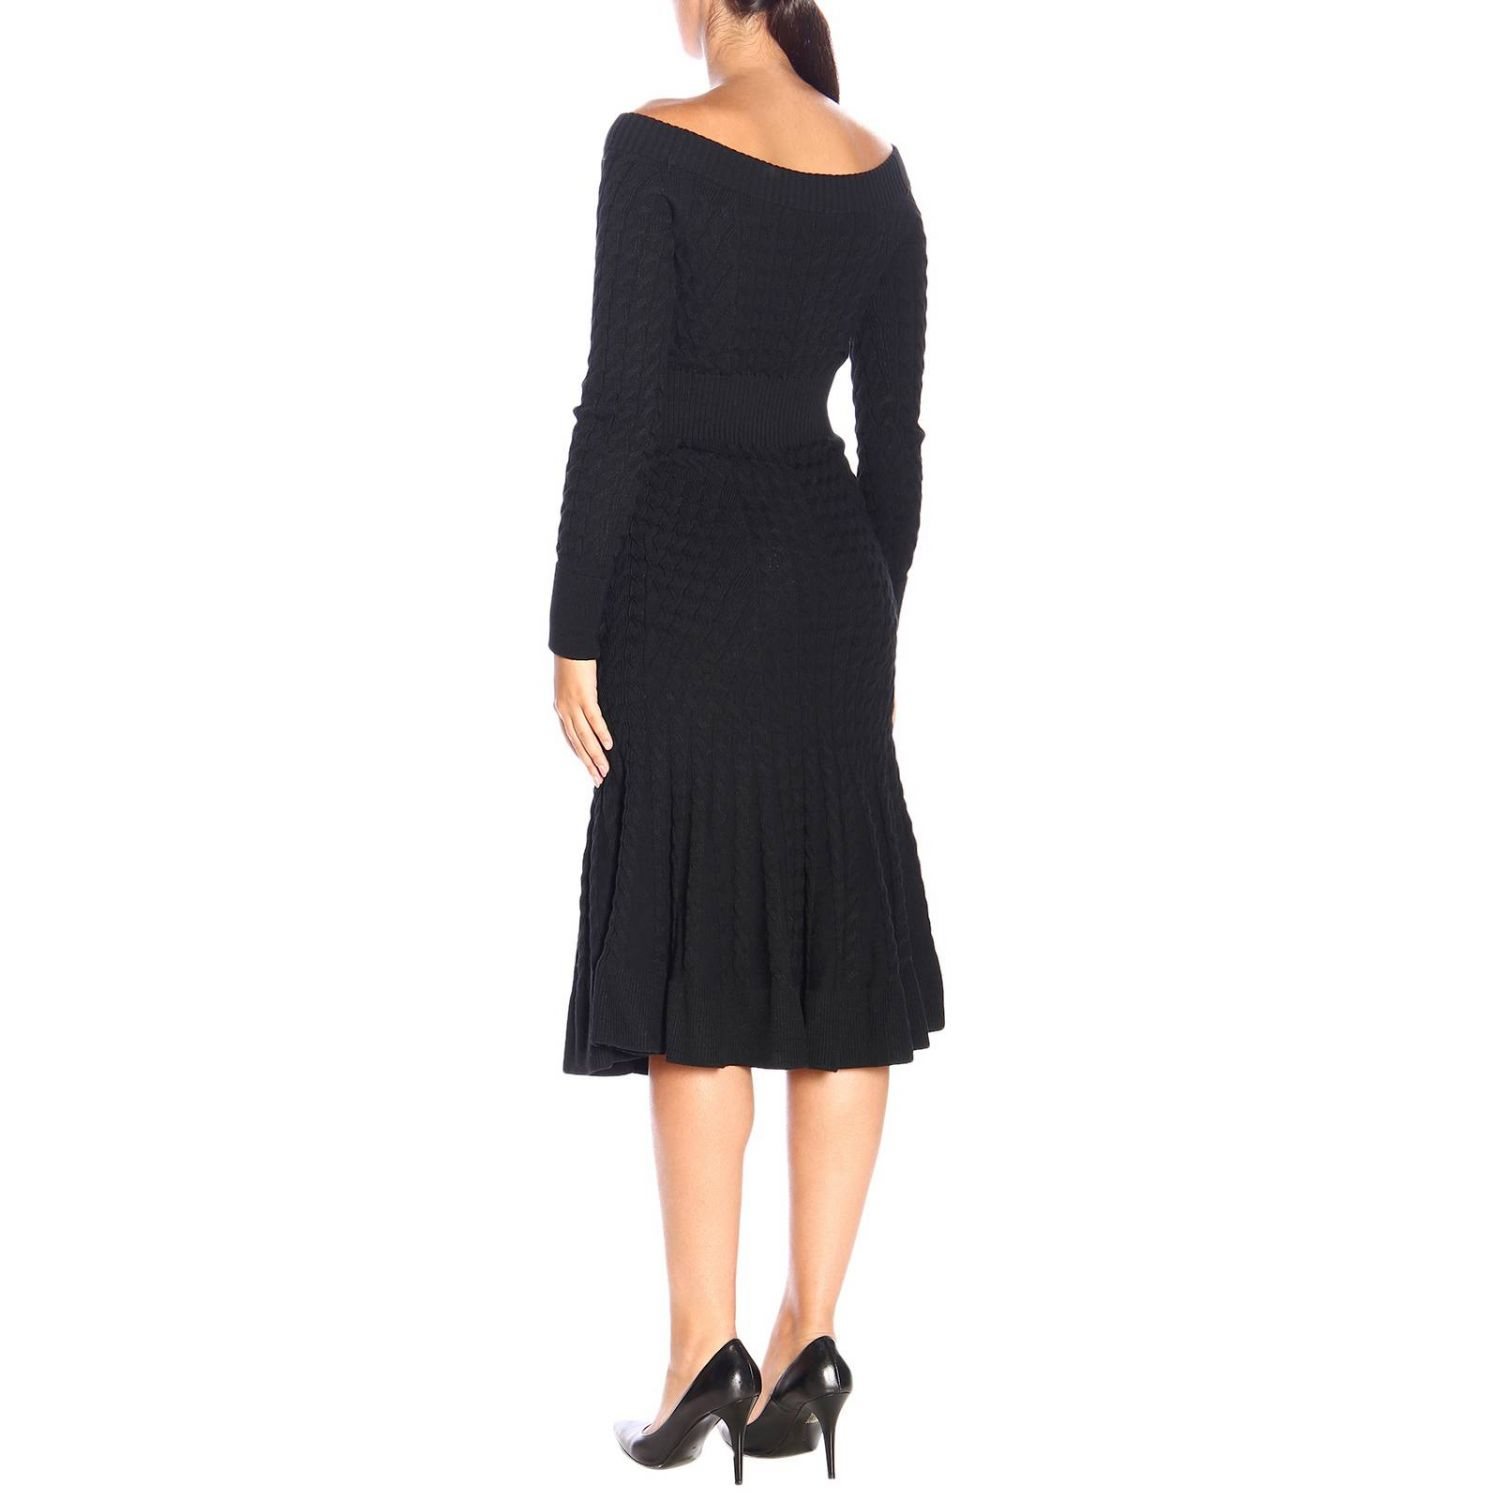 Dress Alexander Mcqueen: Dress women Alexander Mcqueen black 2